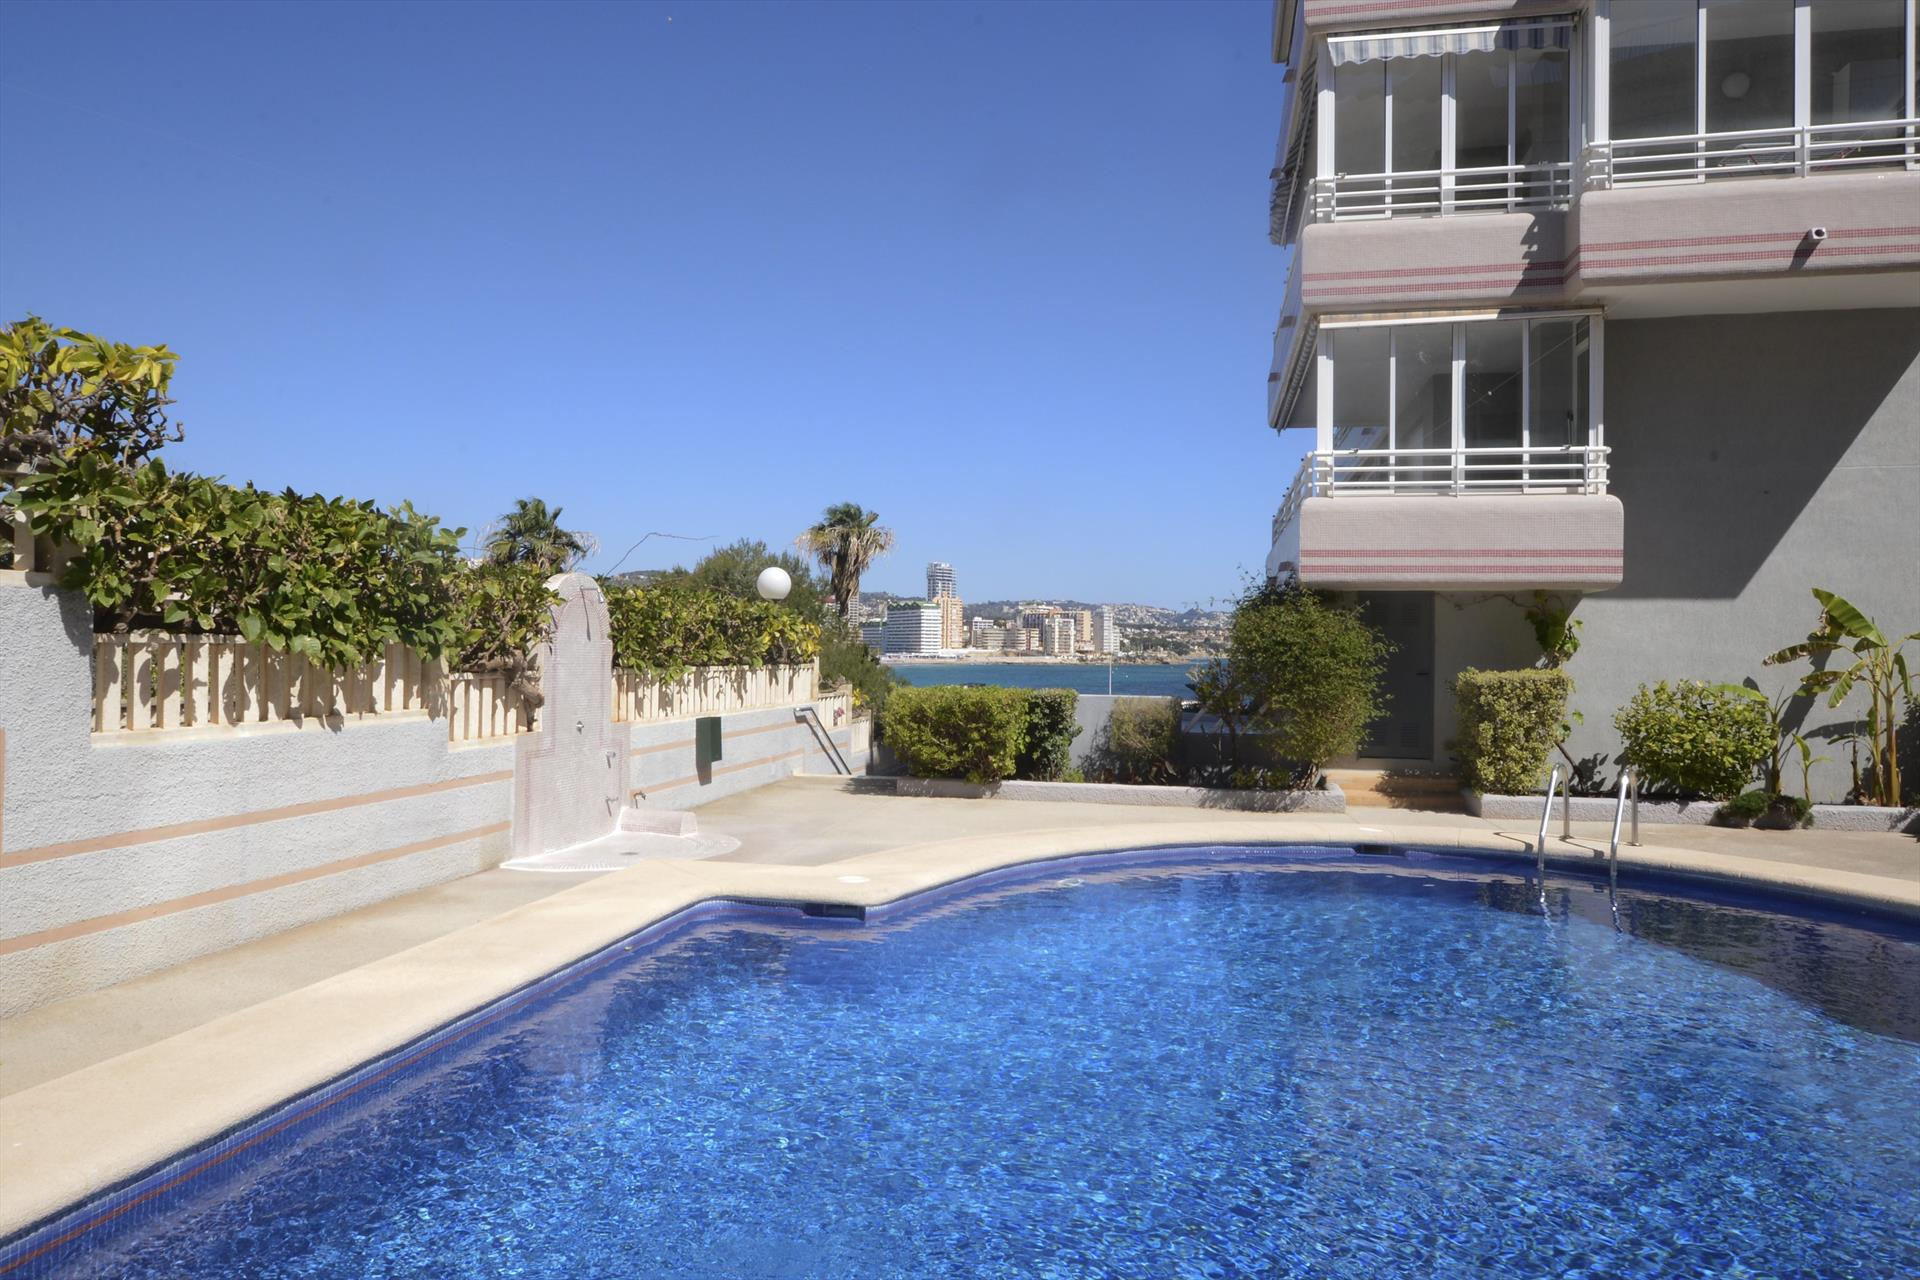 Apartamento Bahia Mar 3A,Apartment  with communal pool in Calpe, on the Costa Blanca, Spain for 6 persons.....